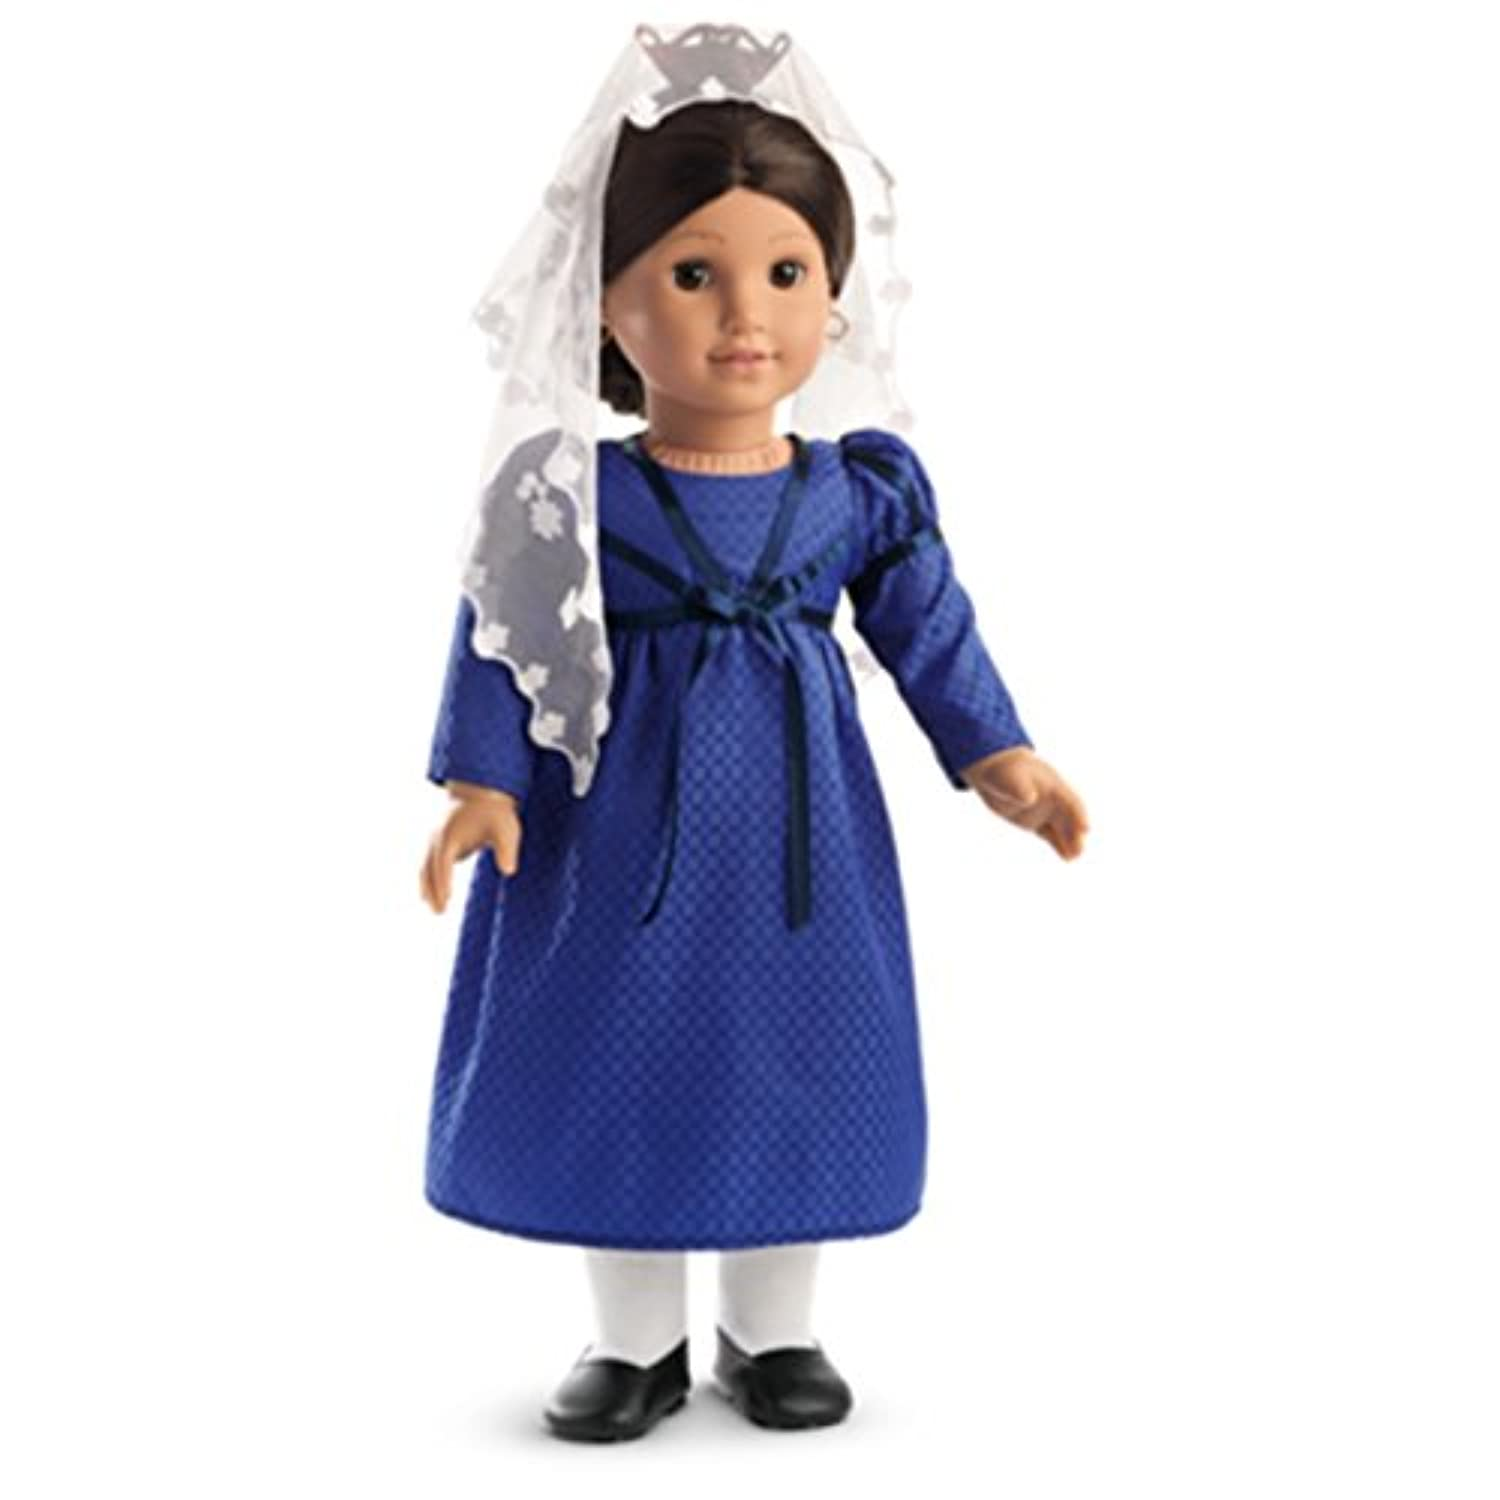 American Girl - Josefina's Navidad Outfit for 18-inch Dolls - Truly Me 2016